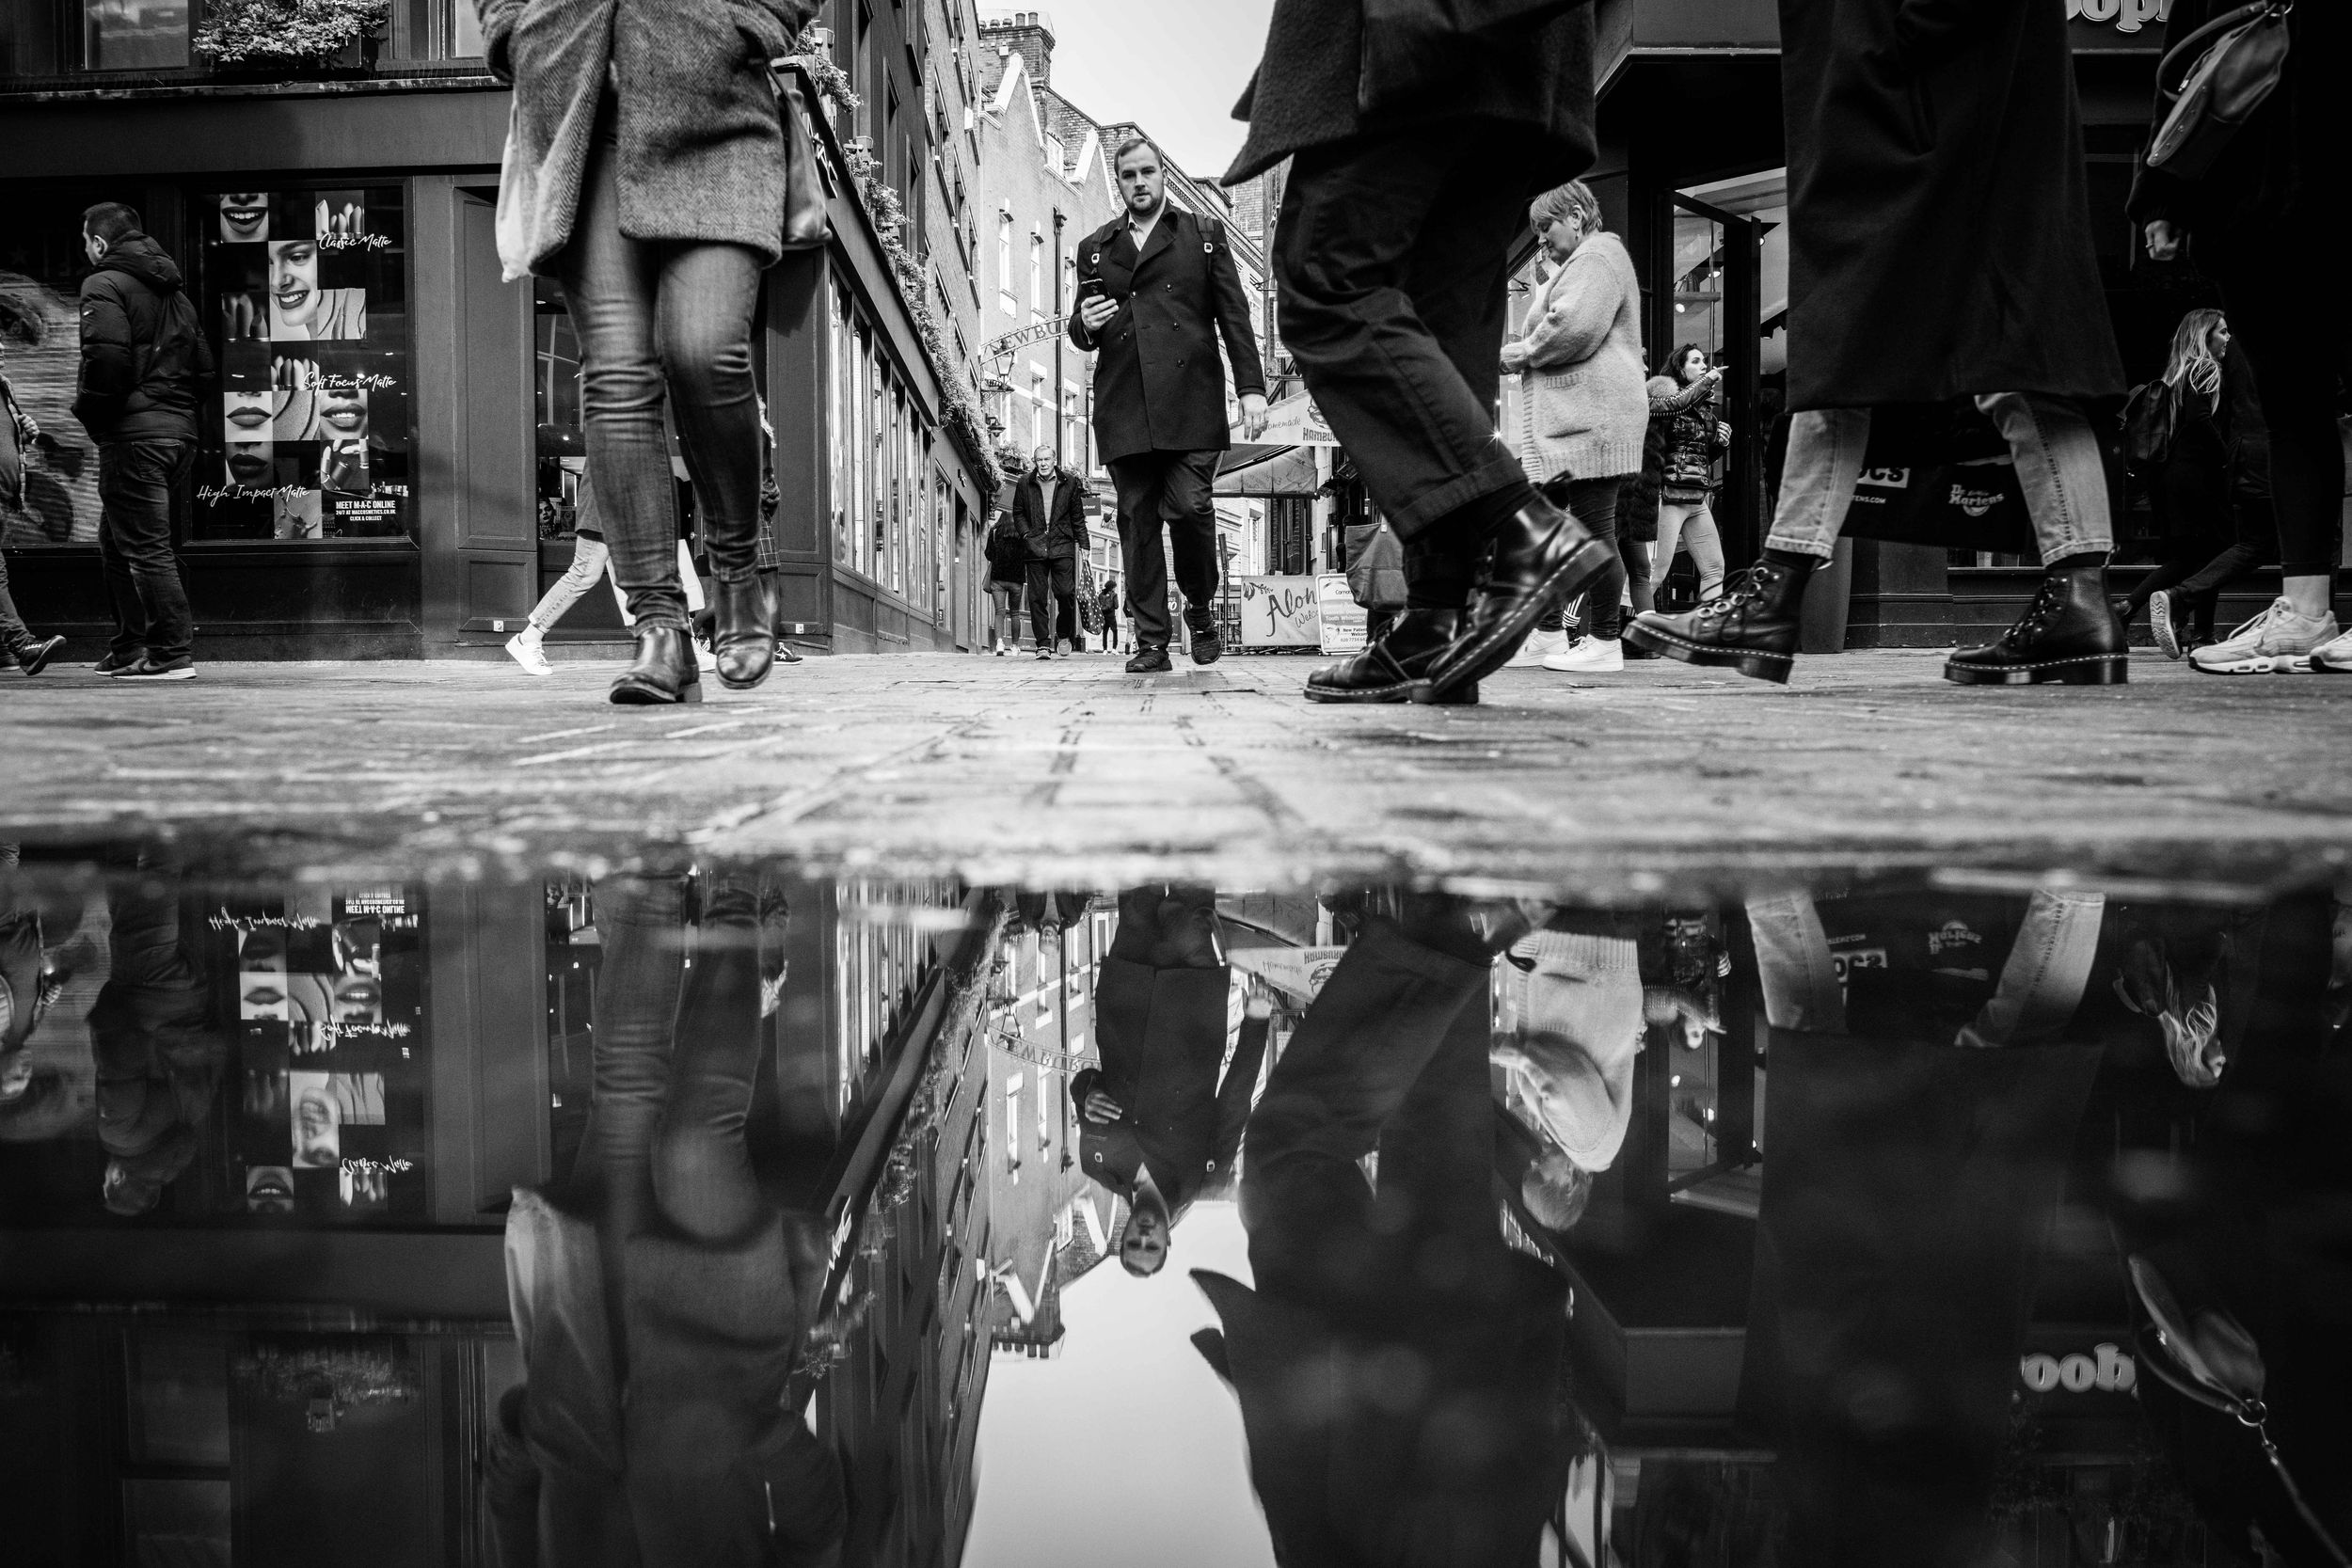 Black and white street photo of man's reflection in puddle on Carnaby Street, London.